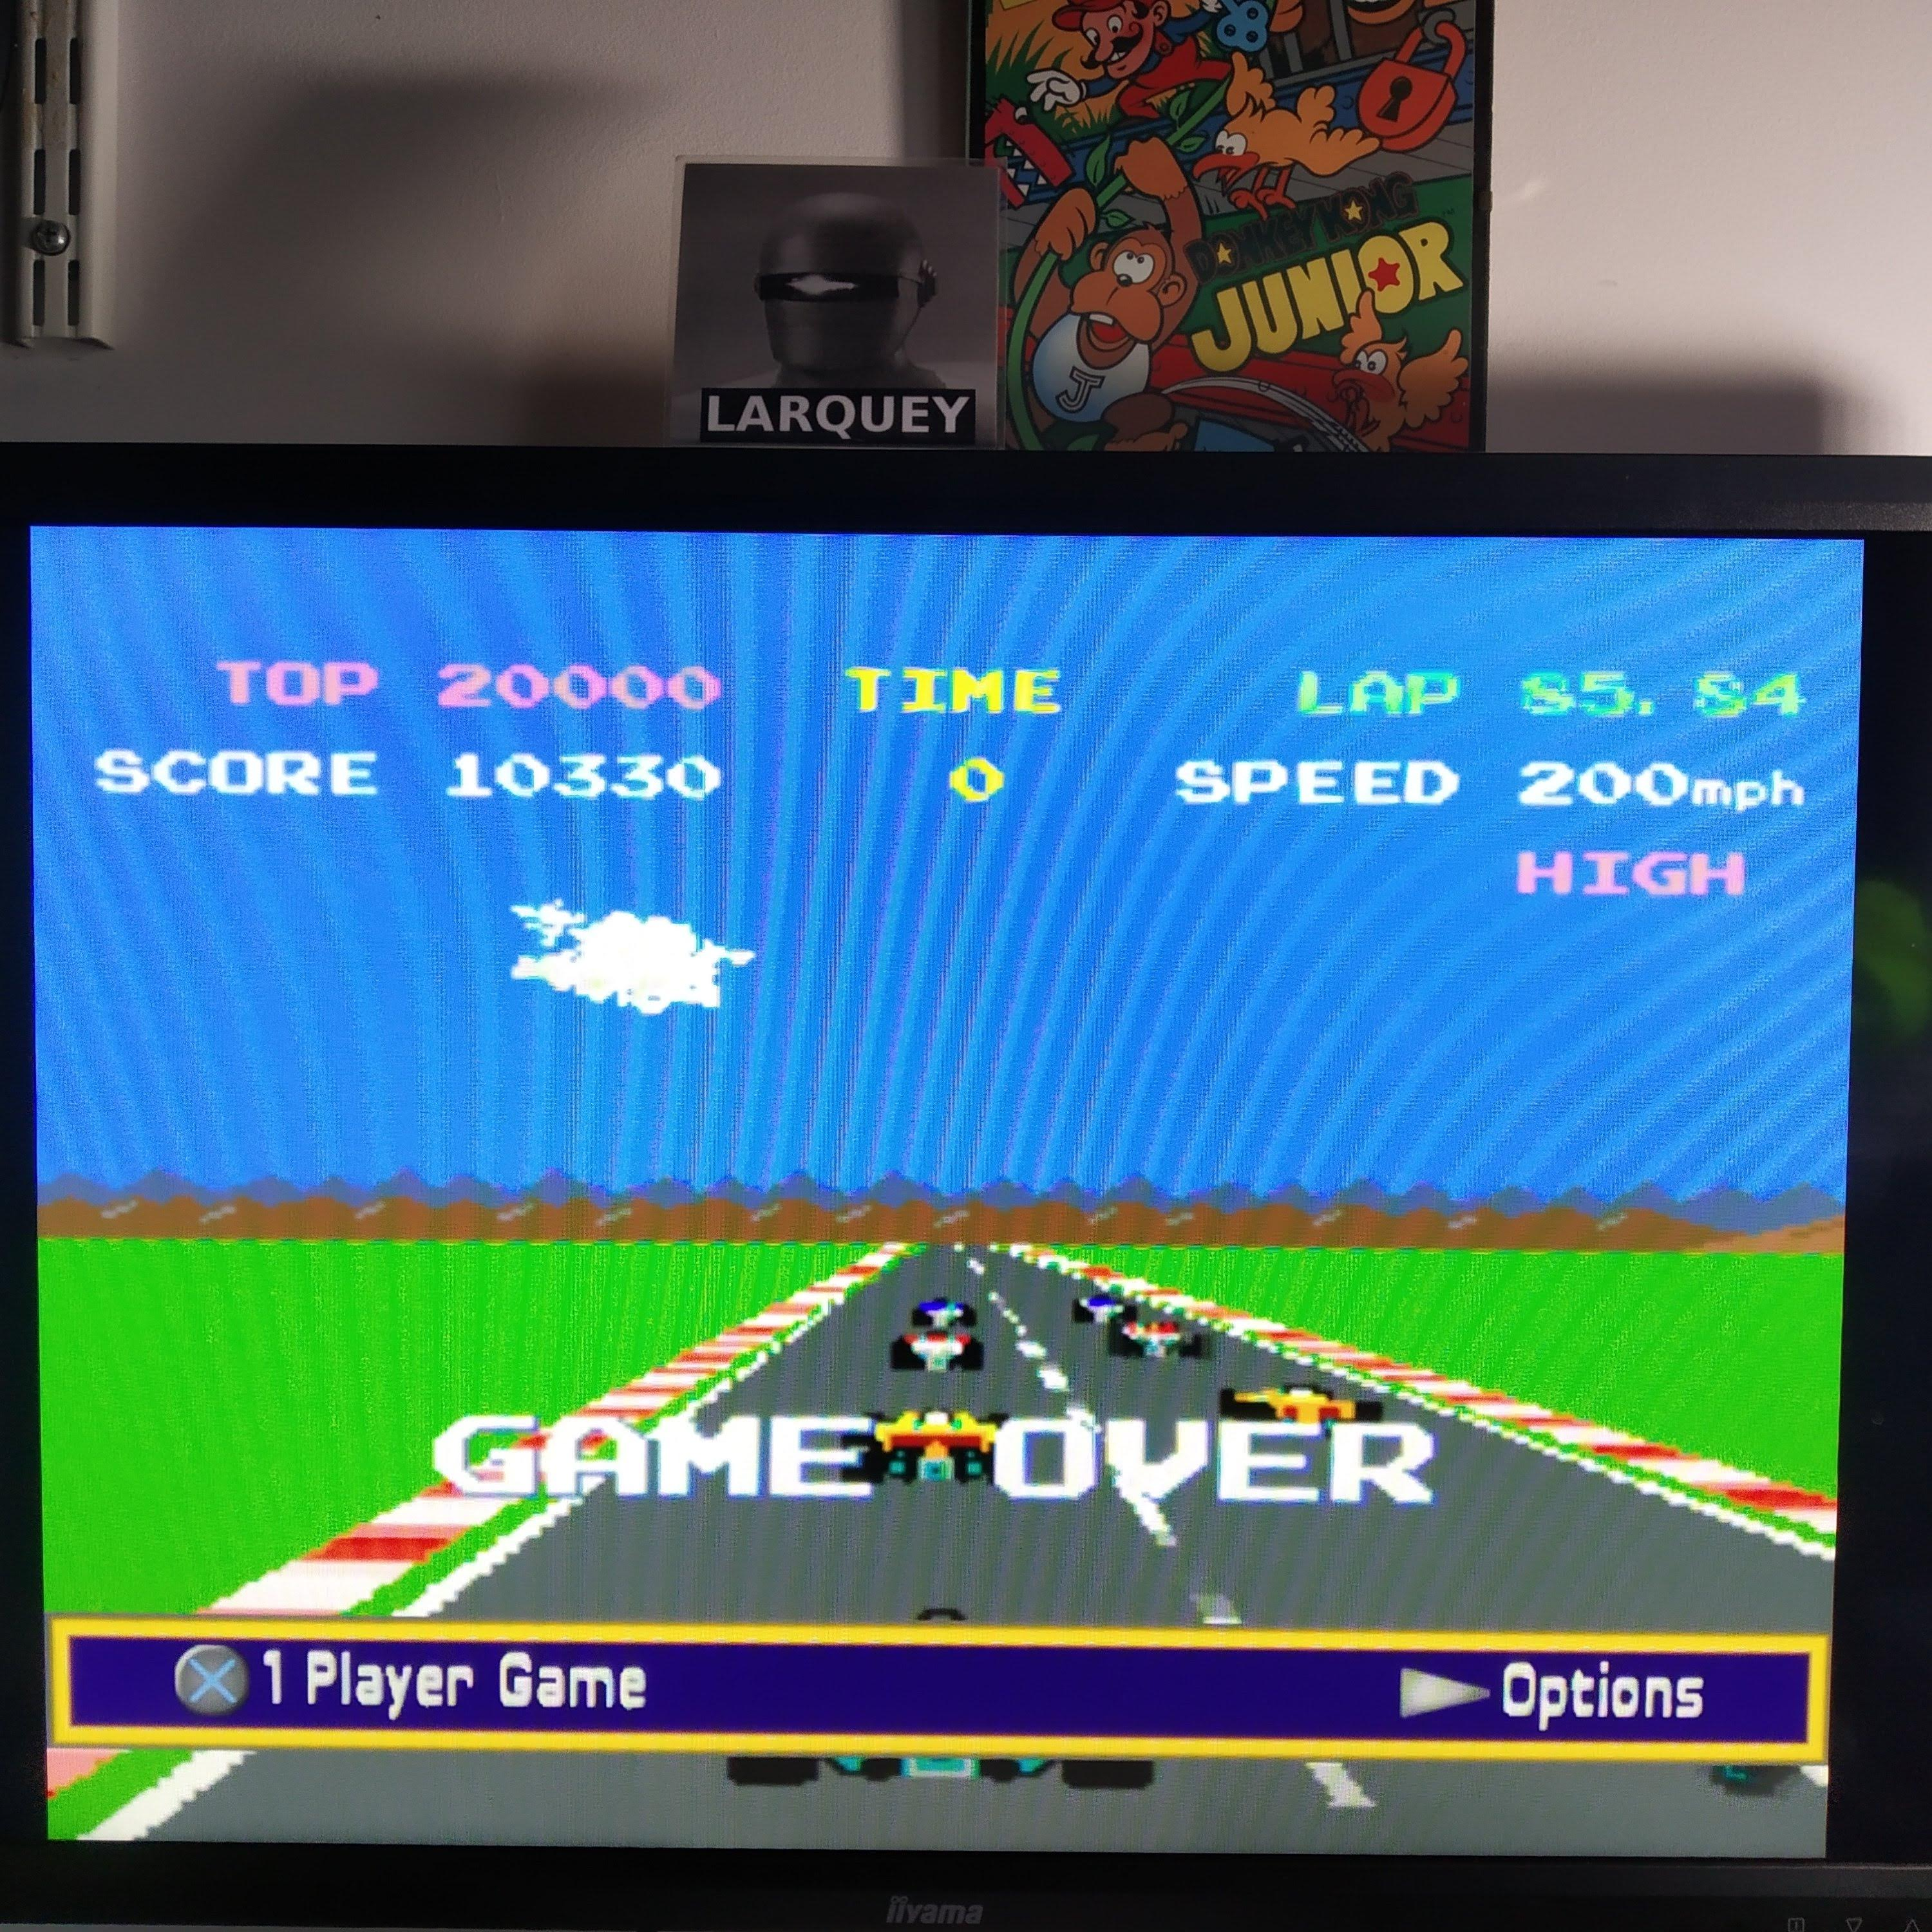 Larquey: Namco Museum: Pole Position II [Seaside Track] (Playstation 2 Emulated) 10,330 points on 2020-08-08 08:17:07